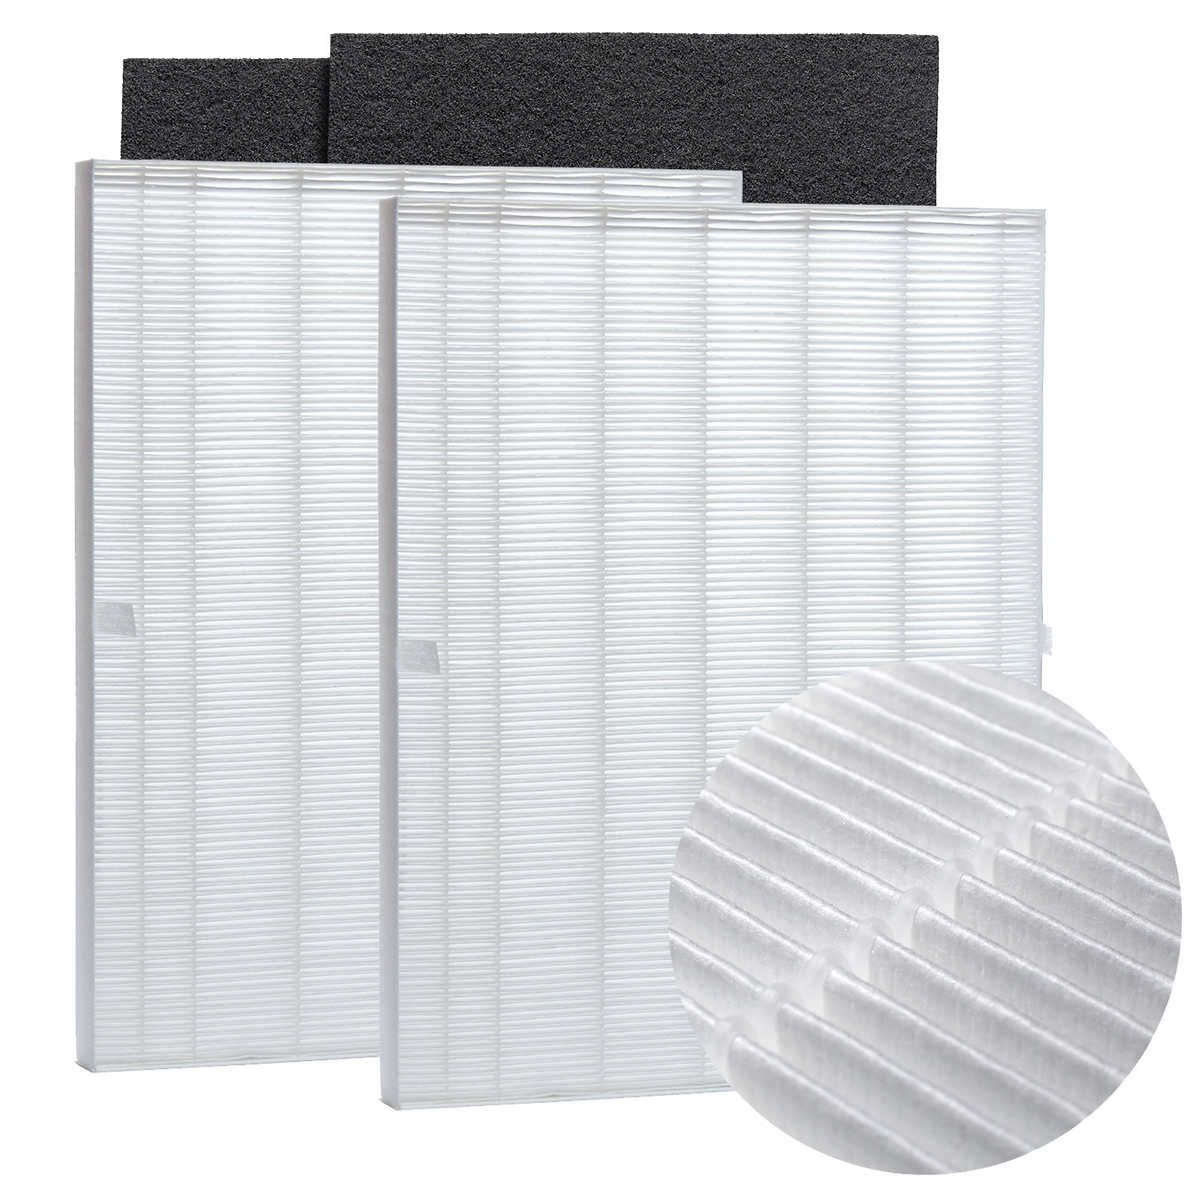 Winix Replacement Filter Pack For 5500 and C535 Air